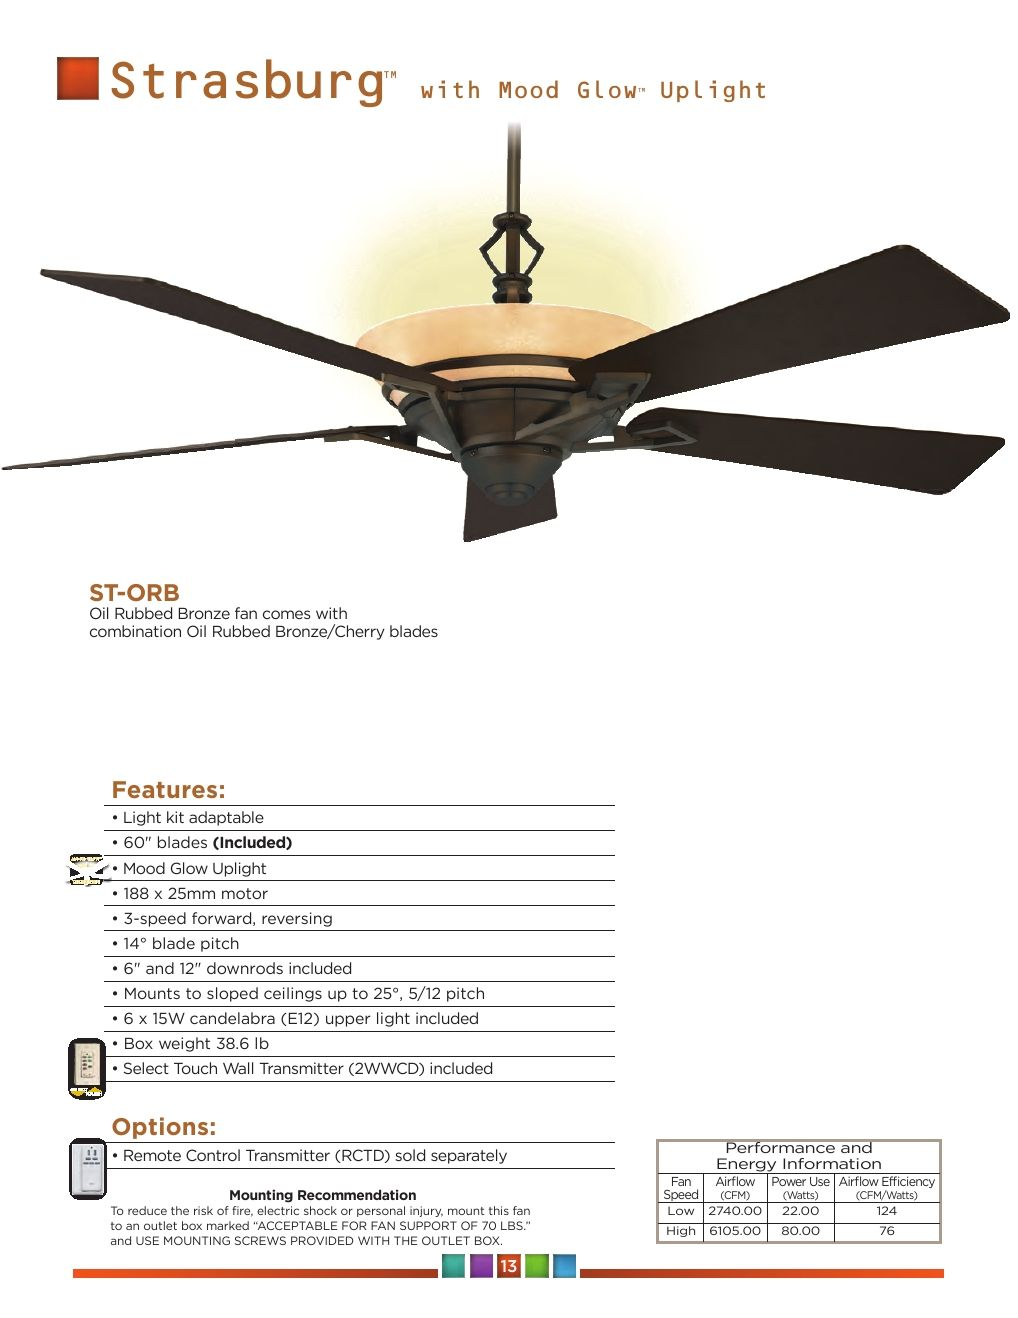 Regency Fan 2015 Catalog In 2020 Ceiling Fan Design Fan Regency